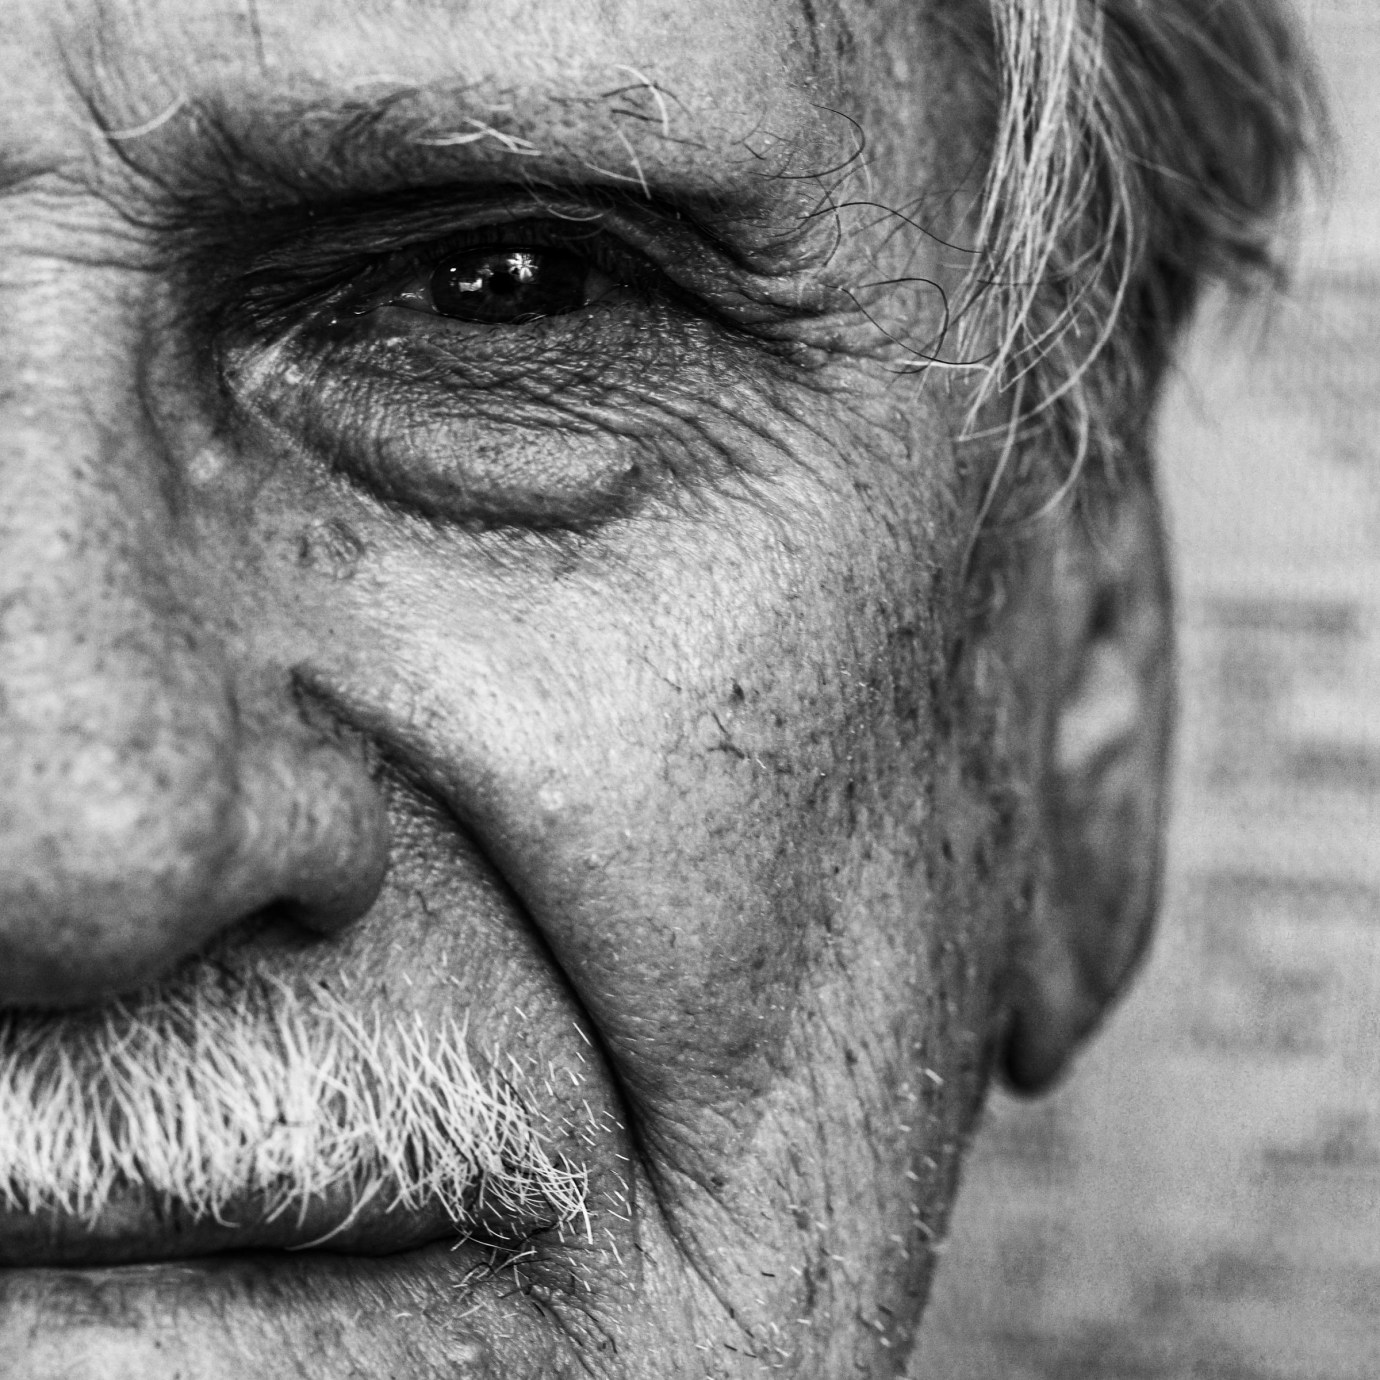 Close up detail of man's face in black and white.